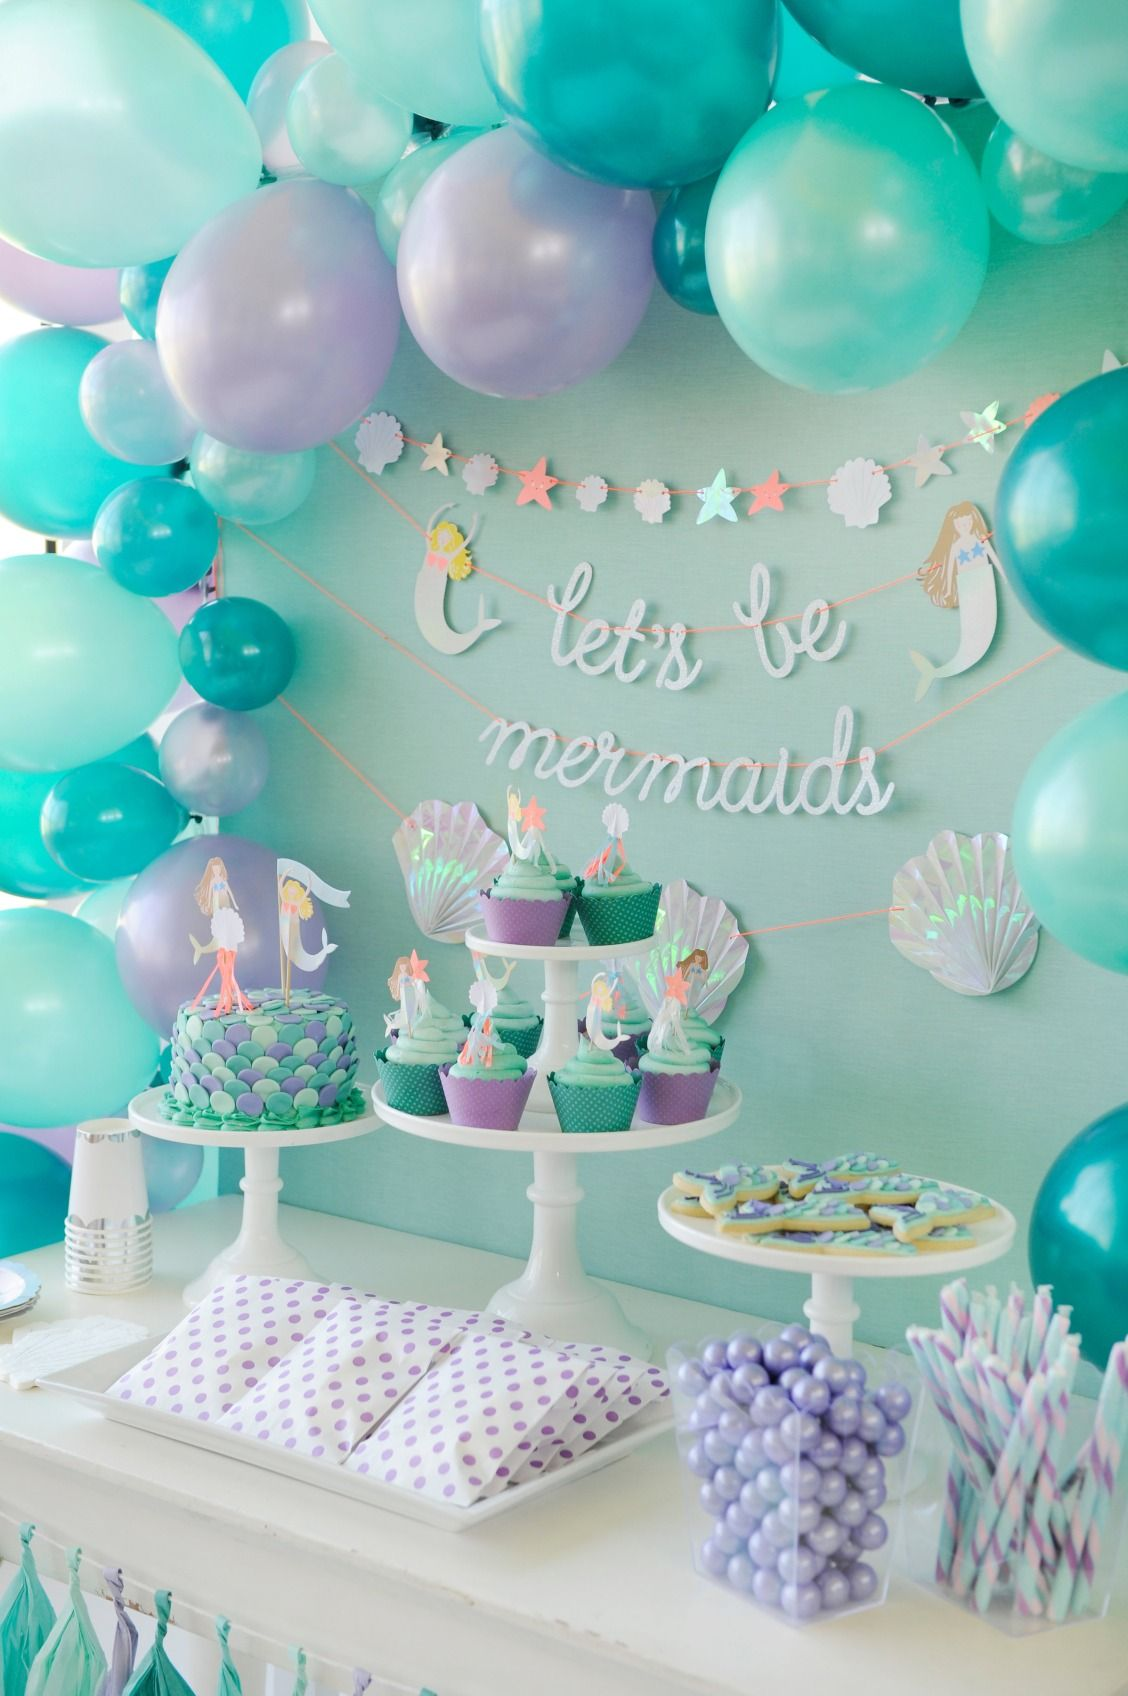 mermaid themed children 39 s birthday party dessert table. Black Bedroom Furniture Sets. Home Design Ideas